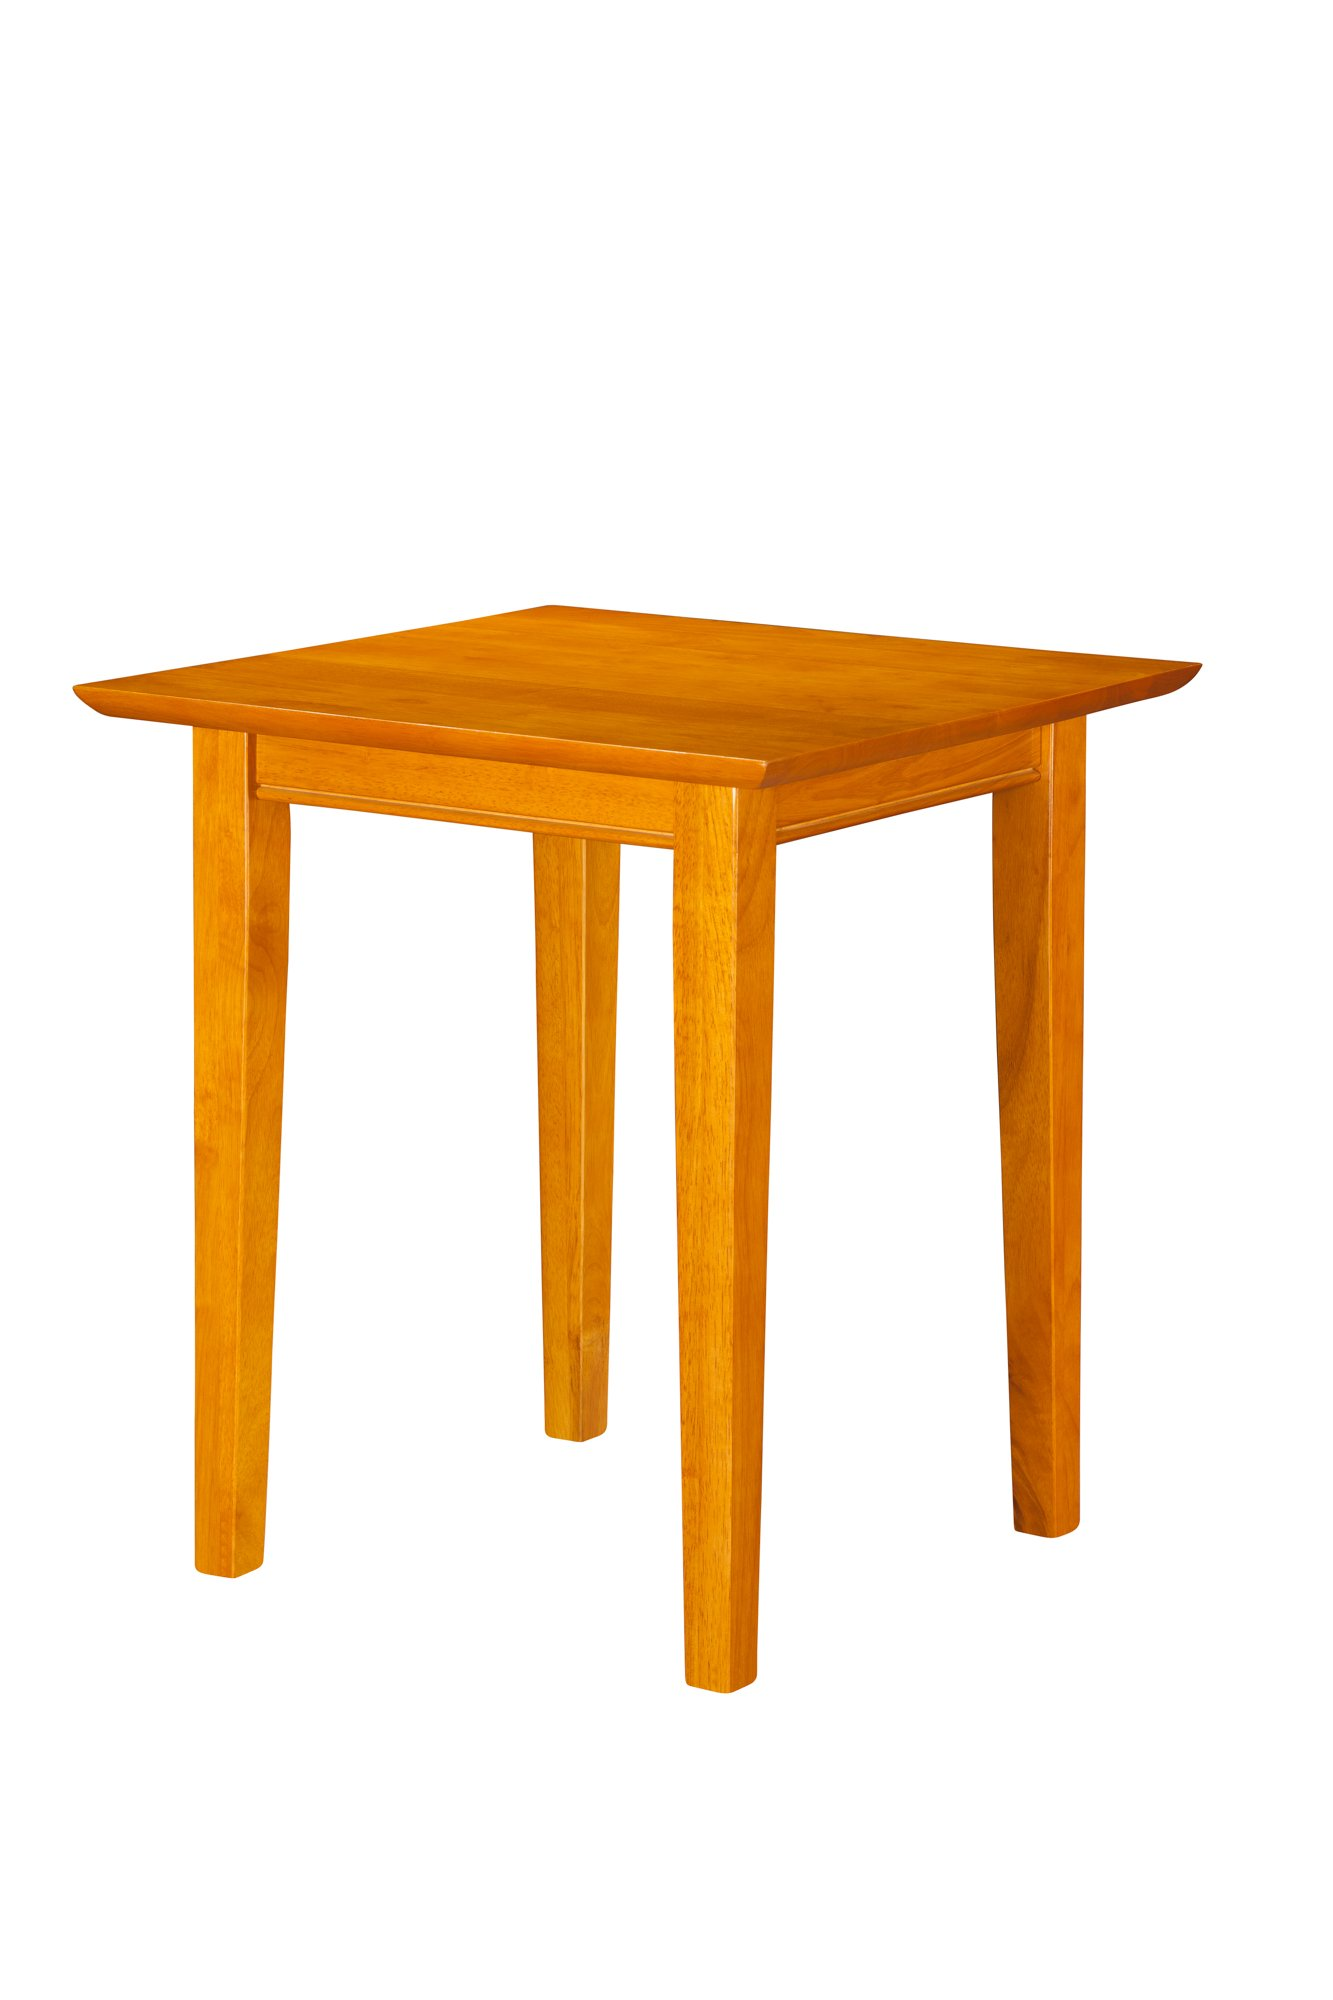 Atlantic Furniture Shaker End Table, Caramel Latte by Atlantic Furniture